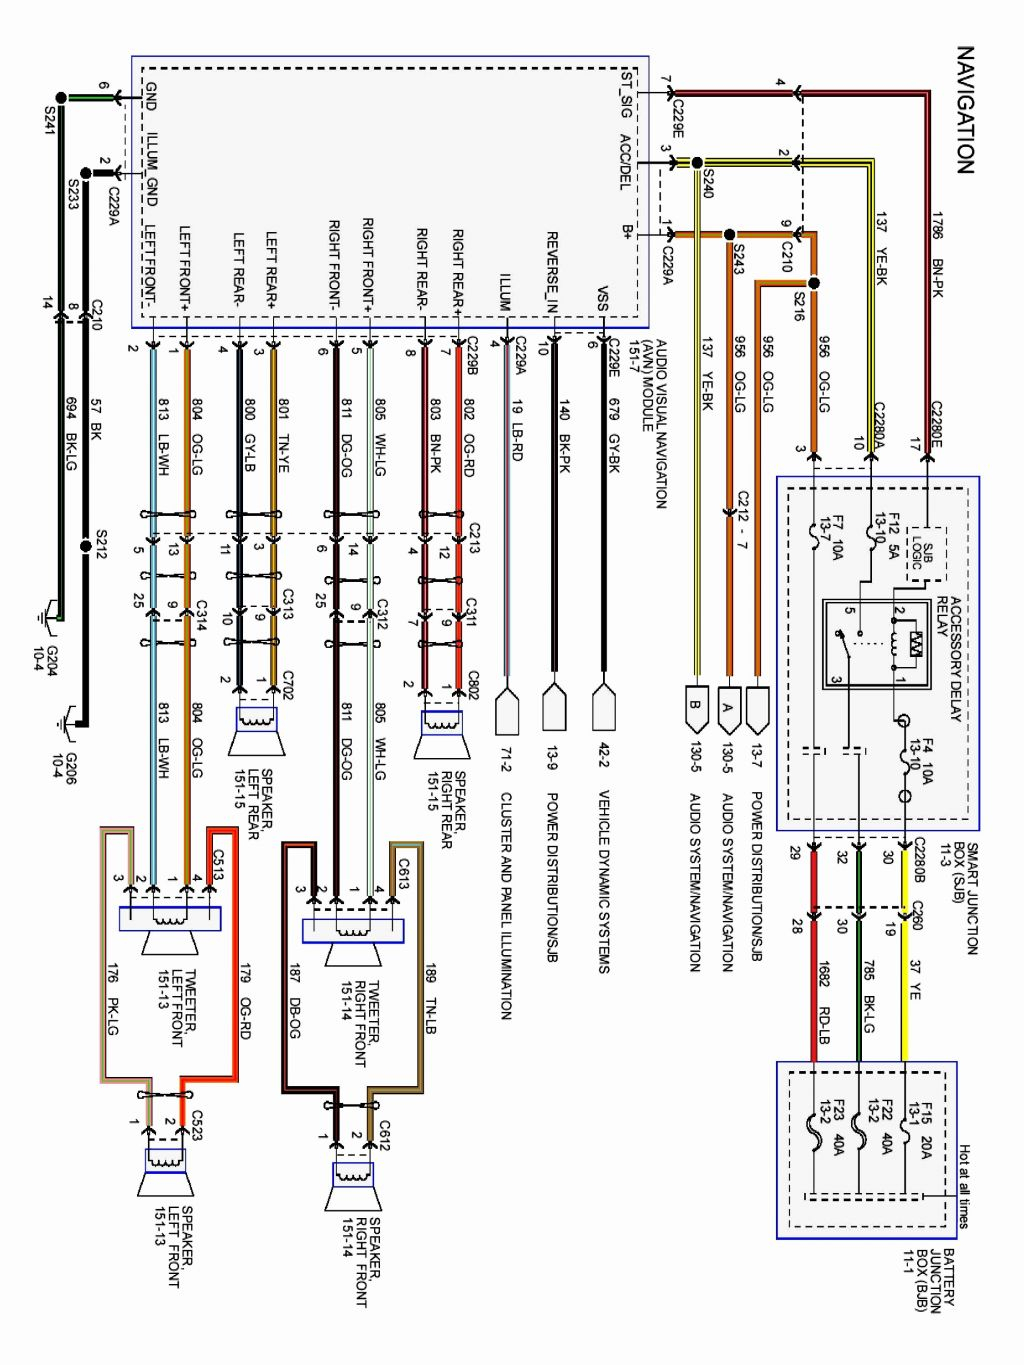 2004 ford f150 wiring diagram download Collection-2011 ford Escape Radio Wiring Diagram 2003 ford Explorer Radio Wiring Diagram Awesome 2006 ford 8-q